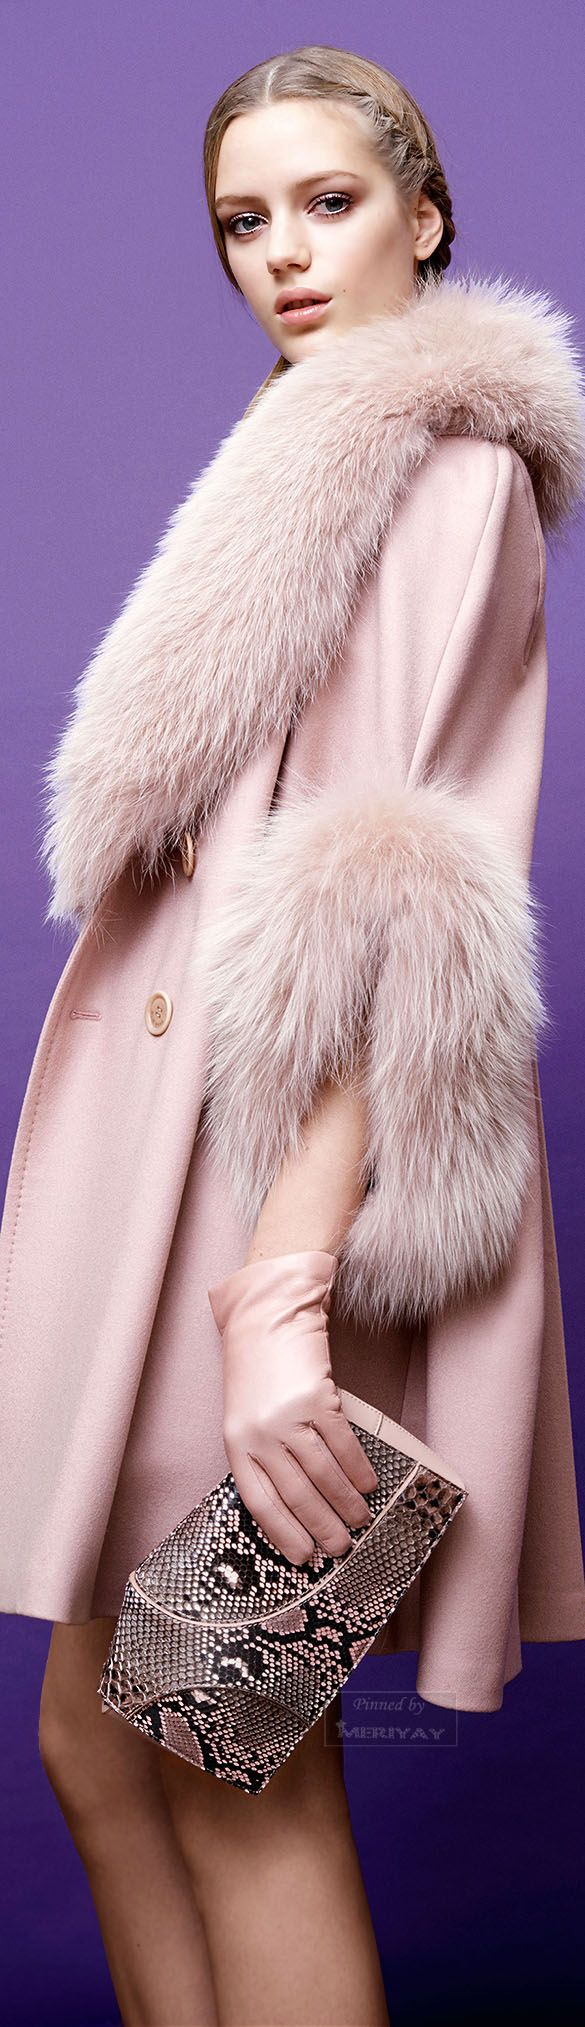 Elie Saab.Pre-Fall 2015. I'd only wear this if it was fake fur though...